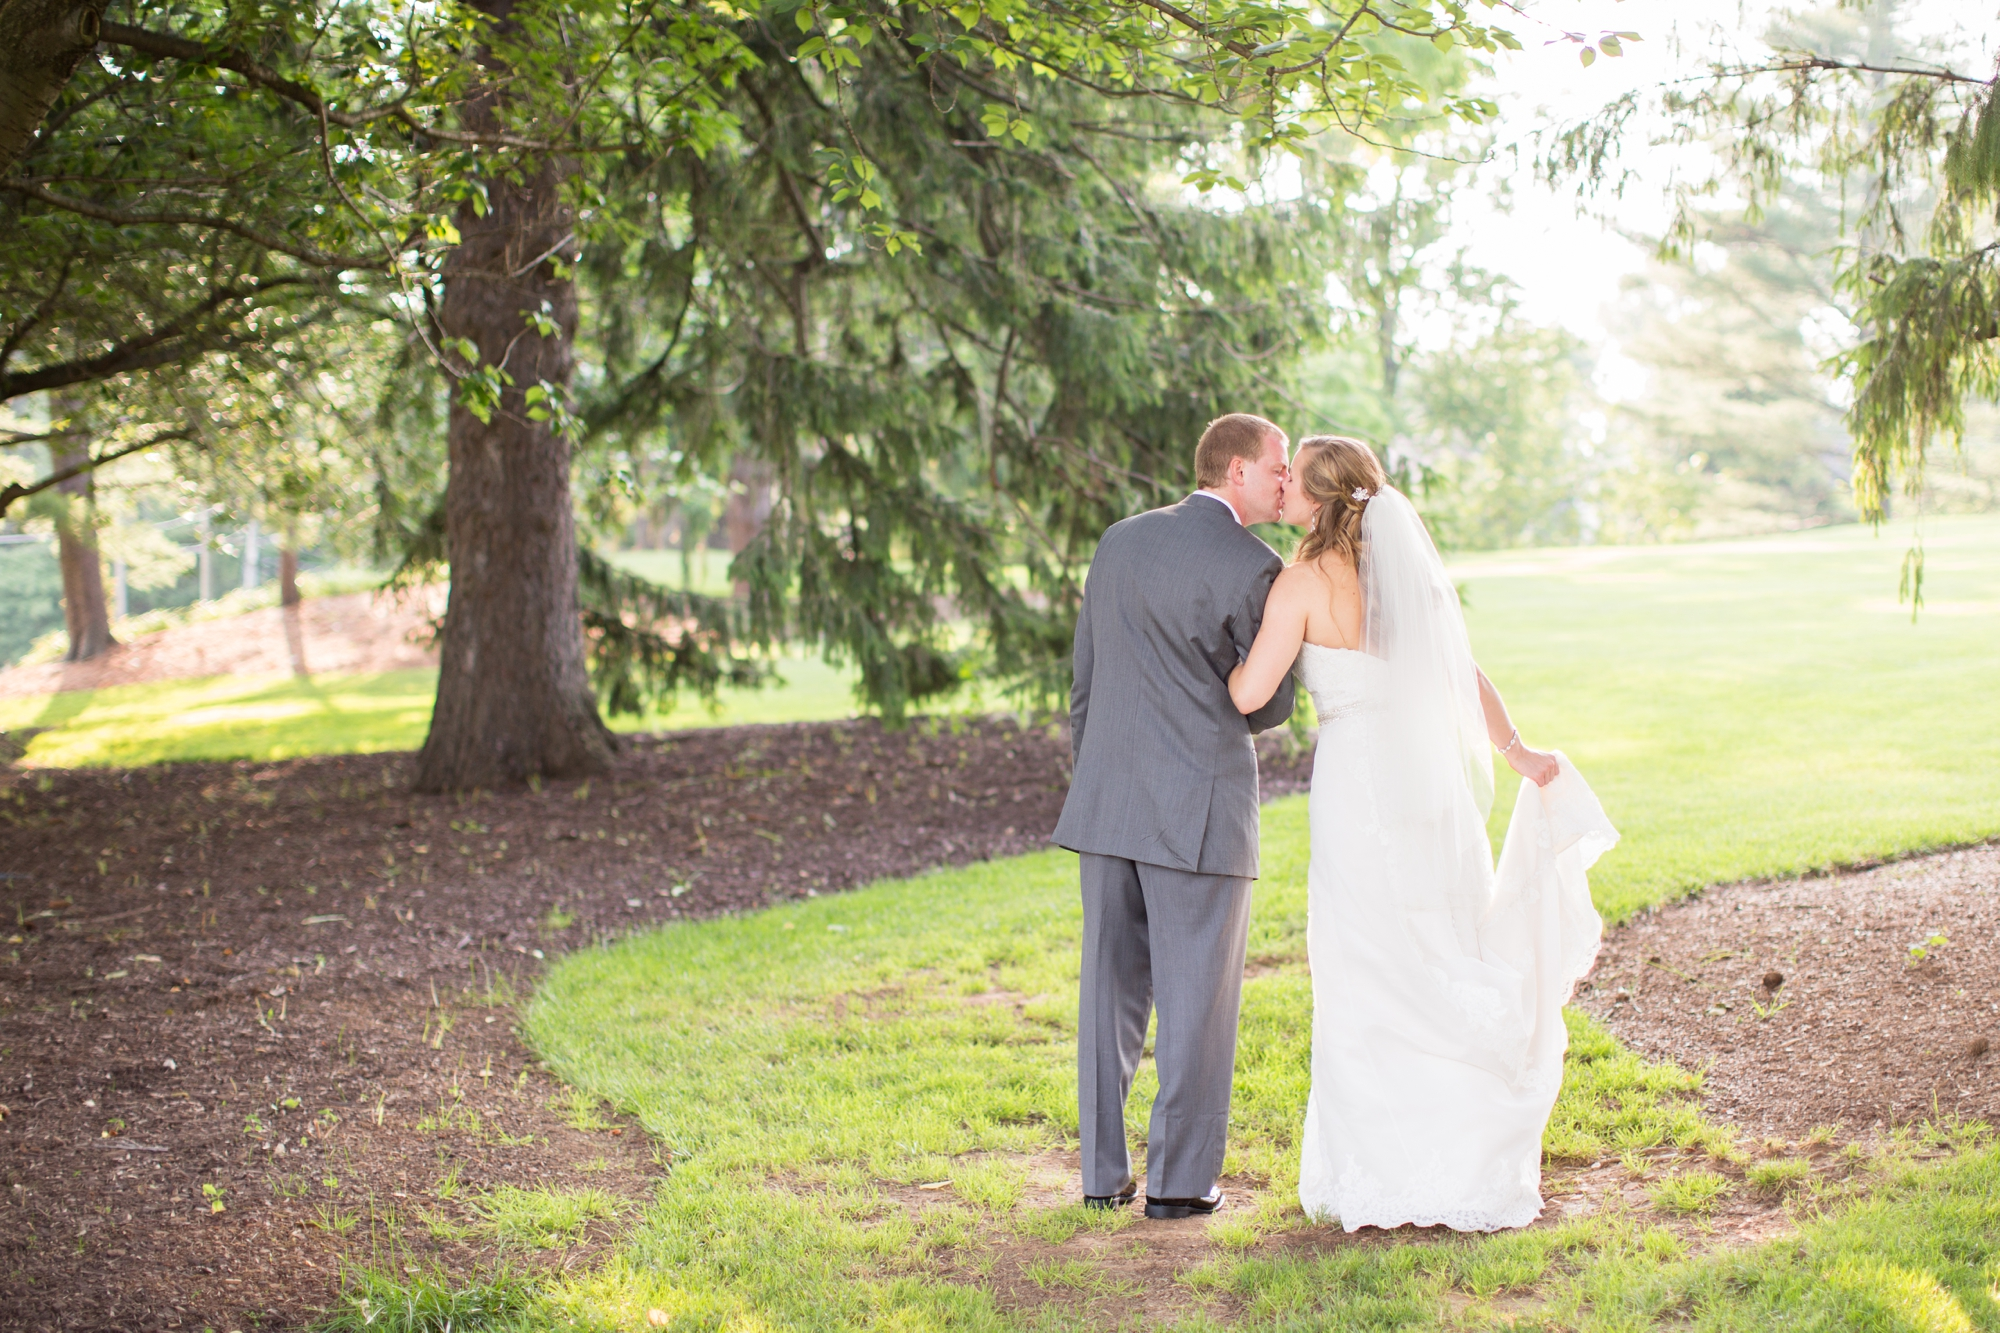 3-Banal Wedding Bride & Groom Portraits-539_annagracephotography maryland wedding photographer country club of maryland.jpg